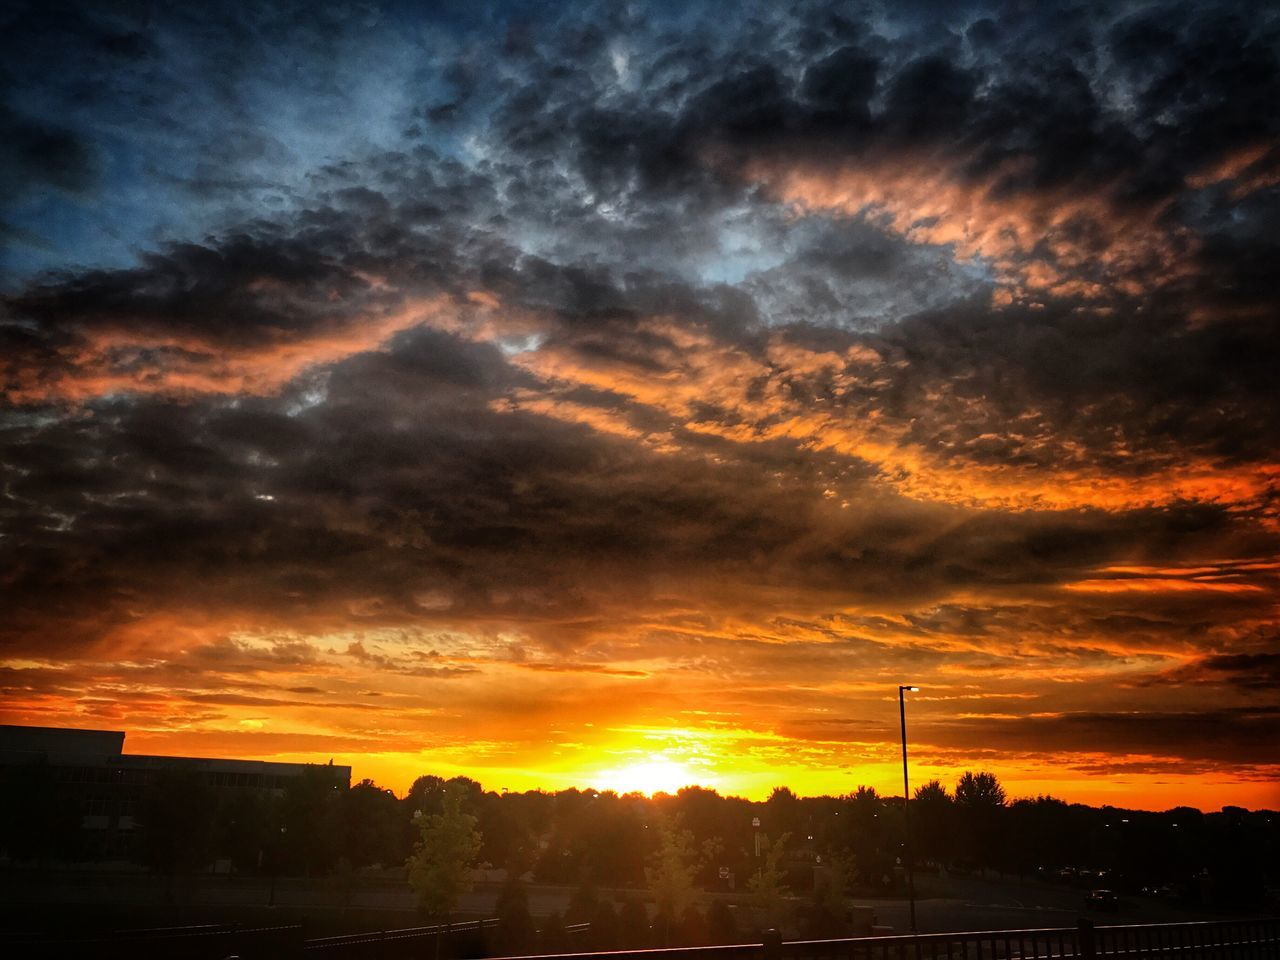 sunset, cloud - sky, dramatic sky, orange color, sky, silhouette, no people, built structure, scenics, architecture, beauty in nature, building exterior, nature, sun, tranquil scene, outdoors, tree, city